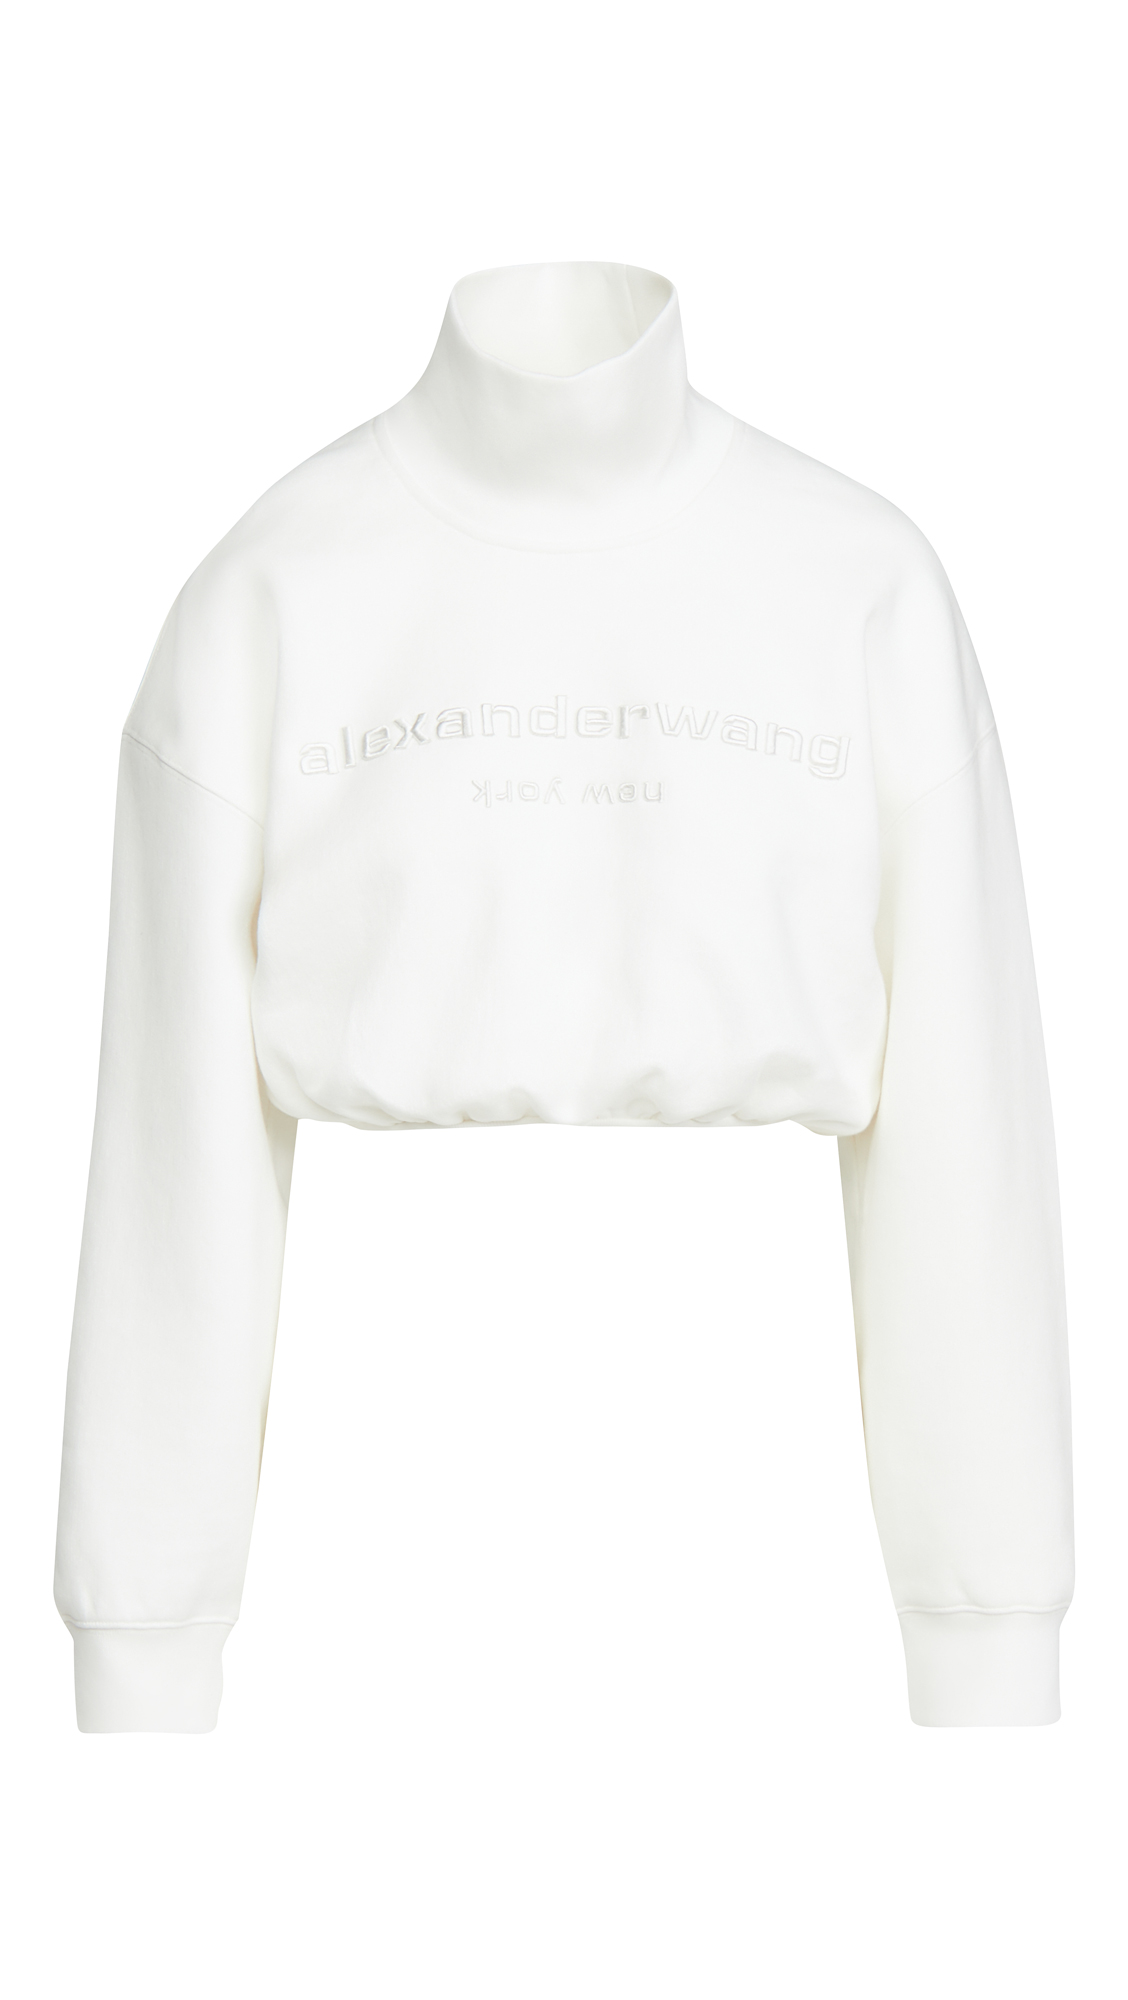 Alexander Wang Cropped Mock Neck Sweatshirt with Embroidery